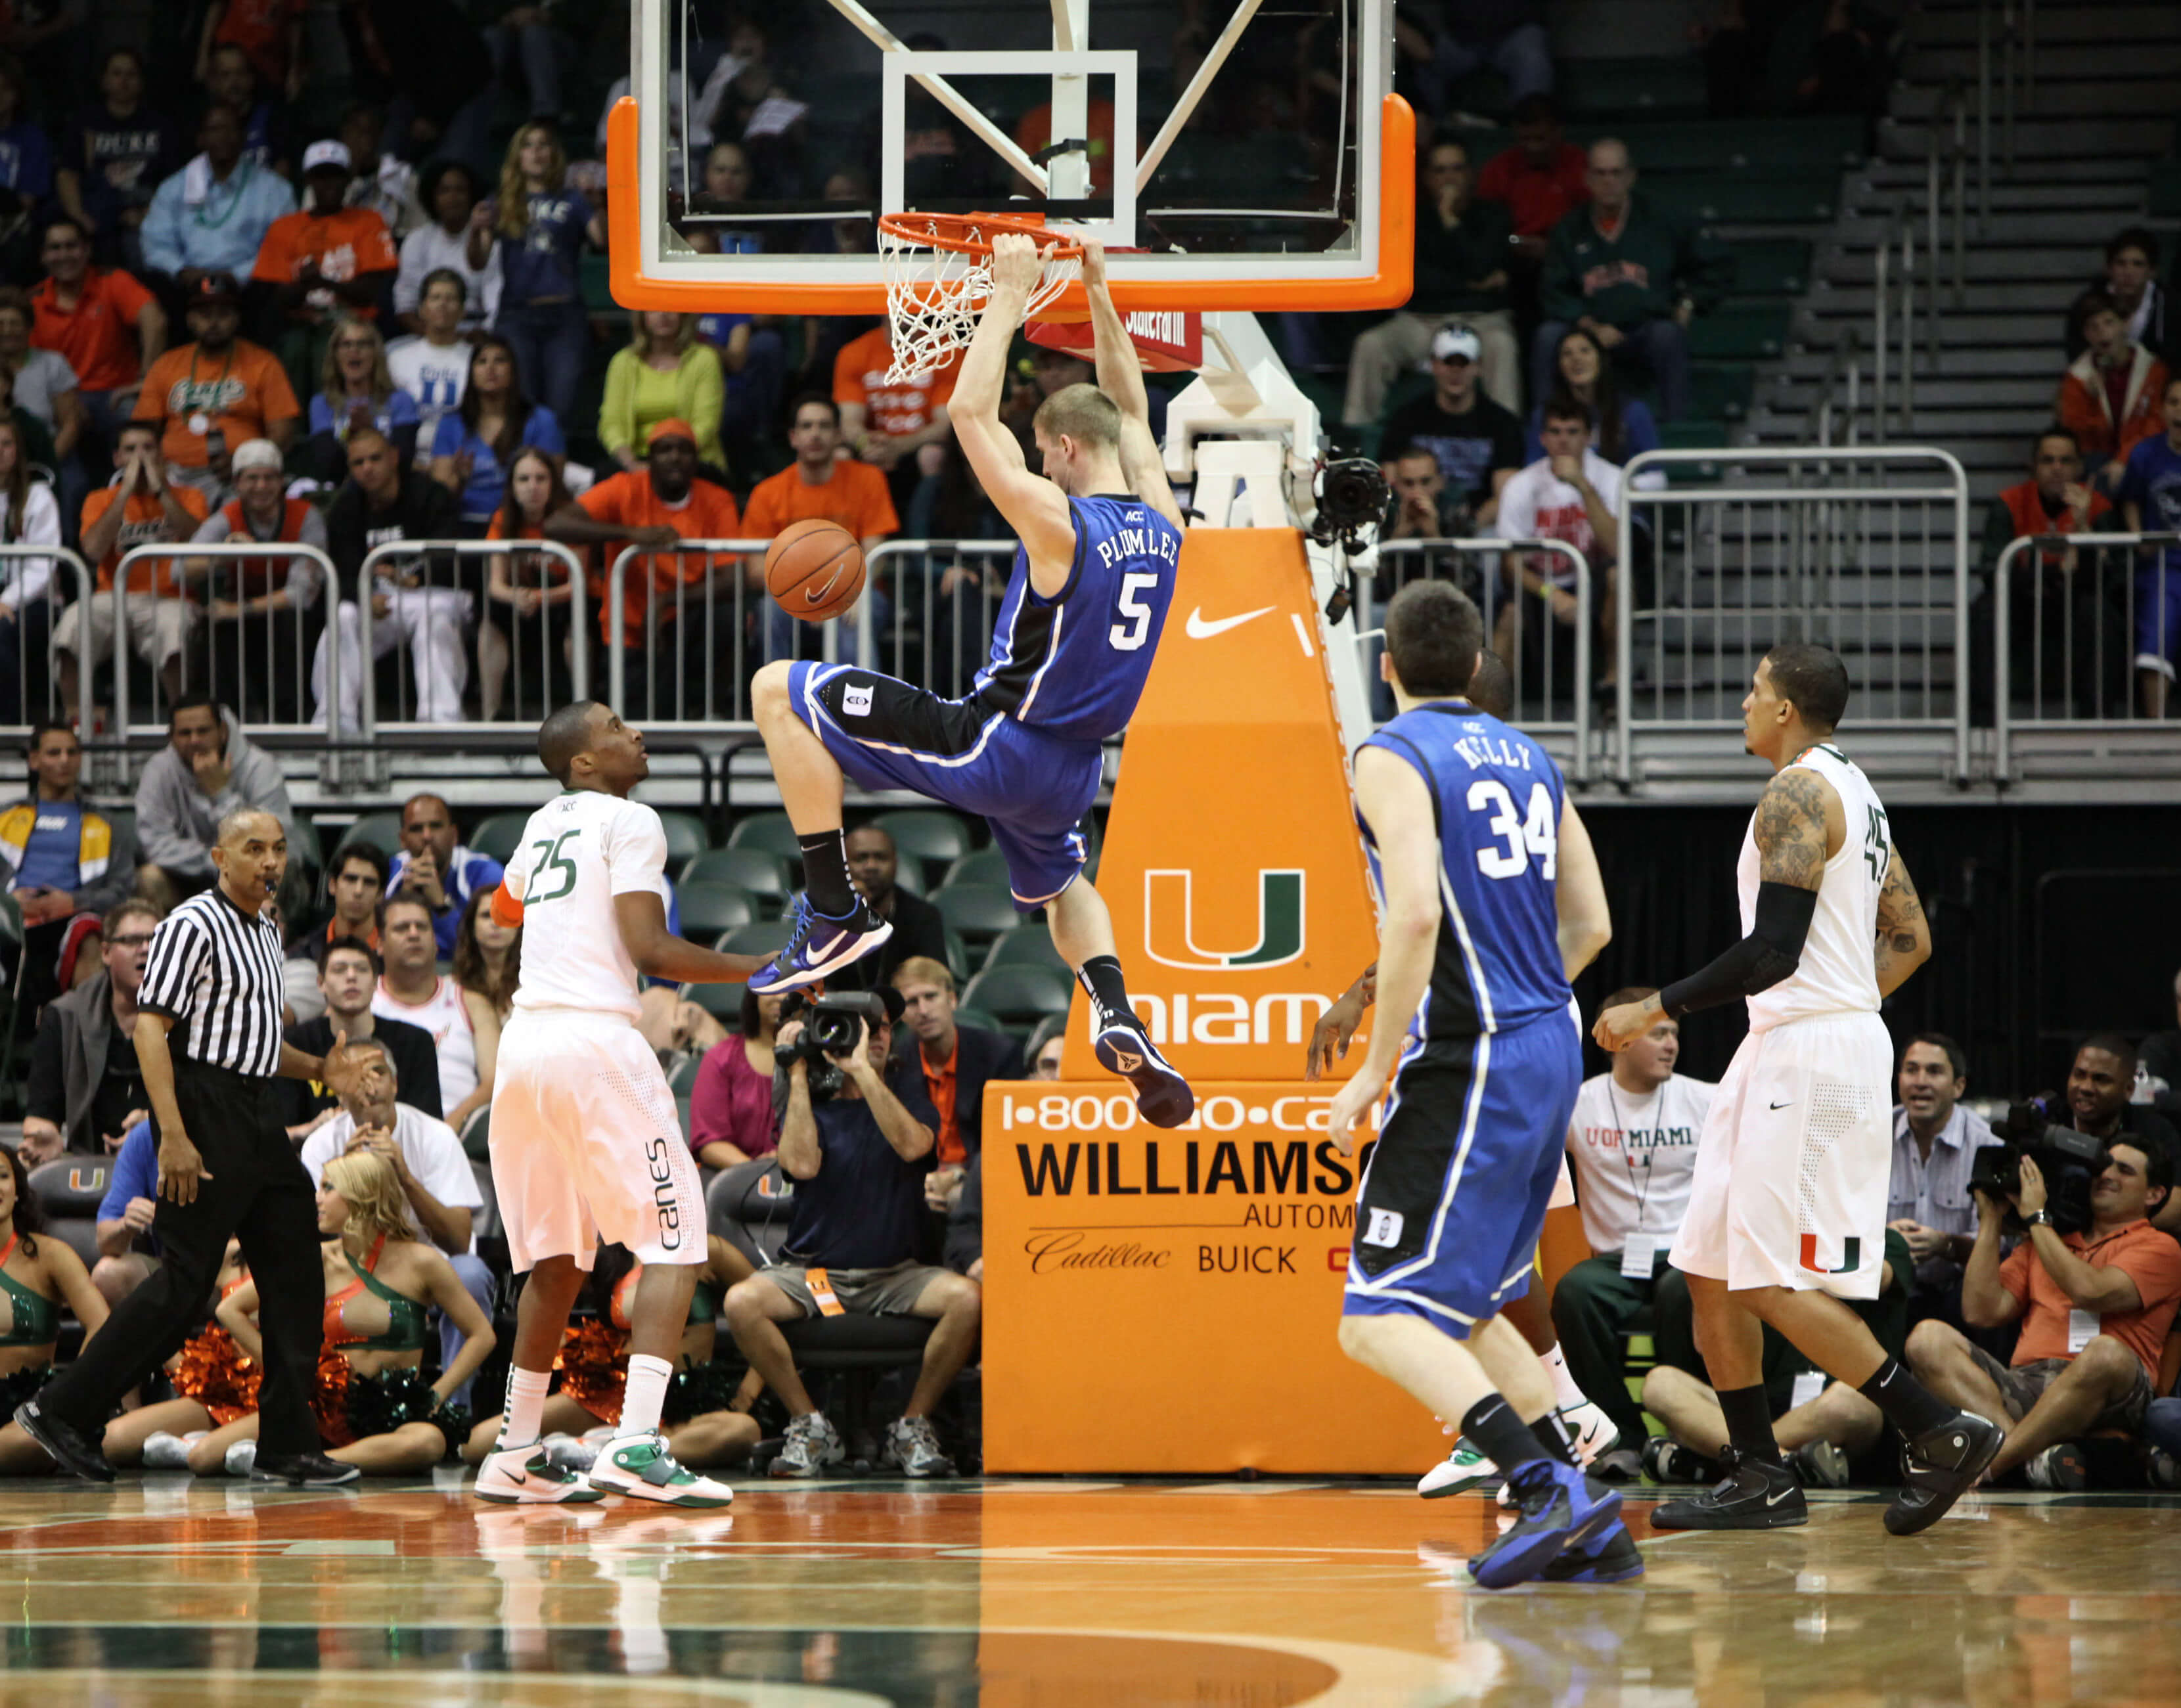 A Duke University player makes a basket during a game against the Miami Hurricanes. One of Duke's opponents was scheduled to play at the university, located in North Carolina. However, the game was canceled due to controversy over the HB2 law.